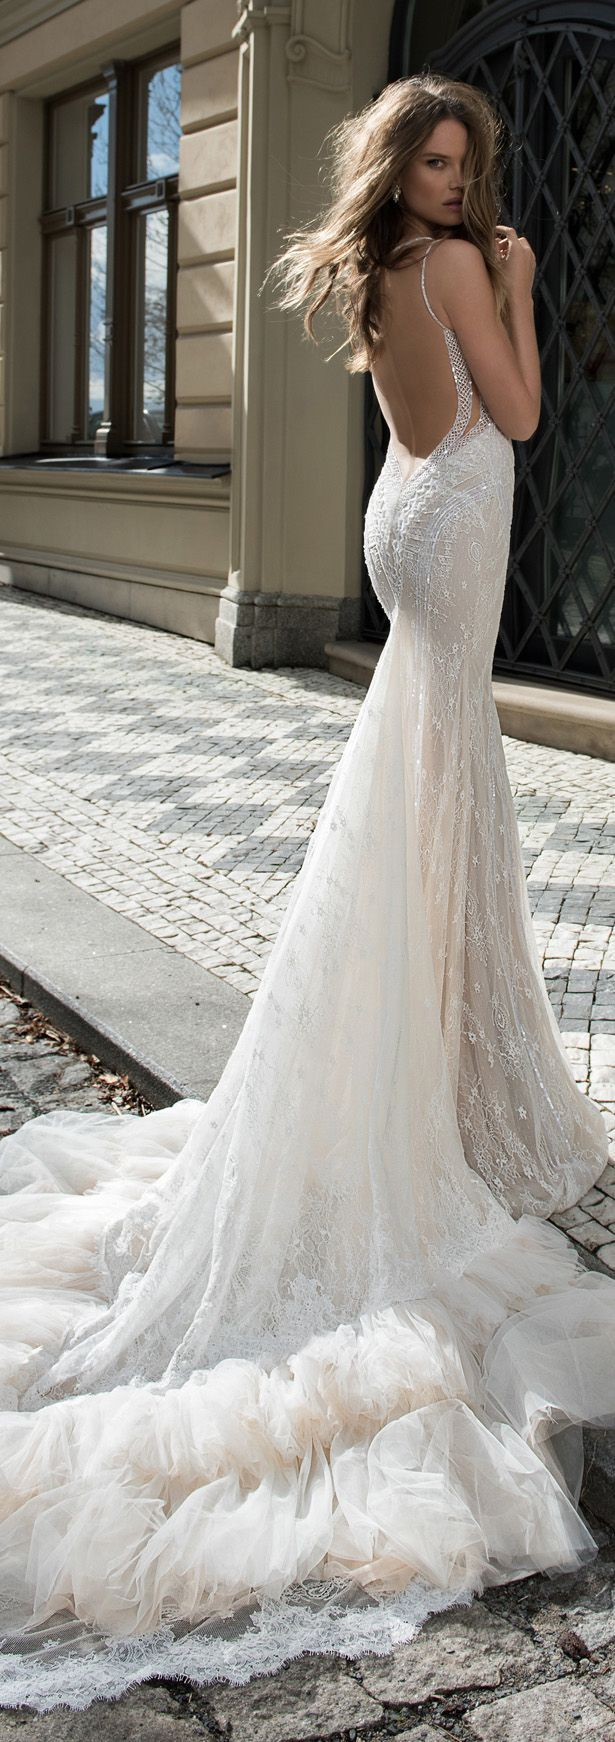 Great Wedding Dress by Berta Bridal Fall 2015